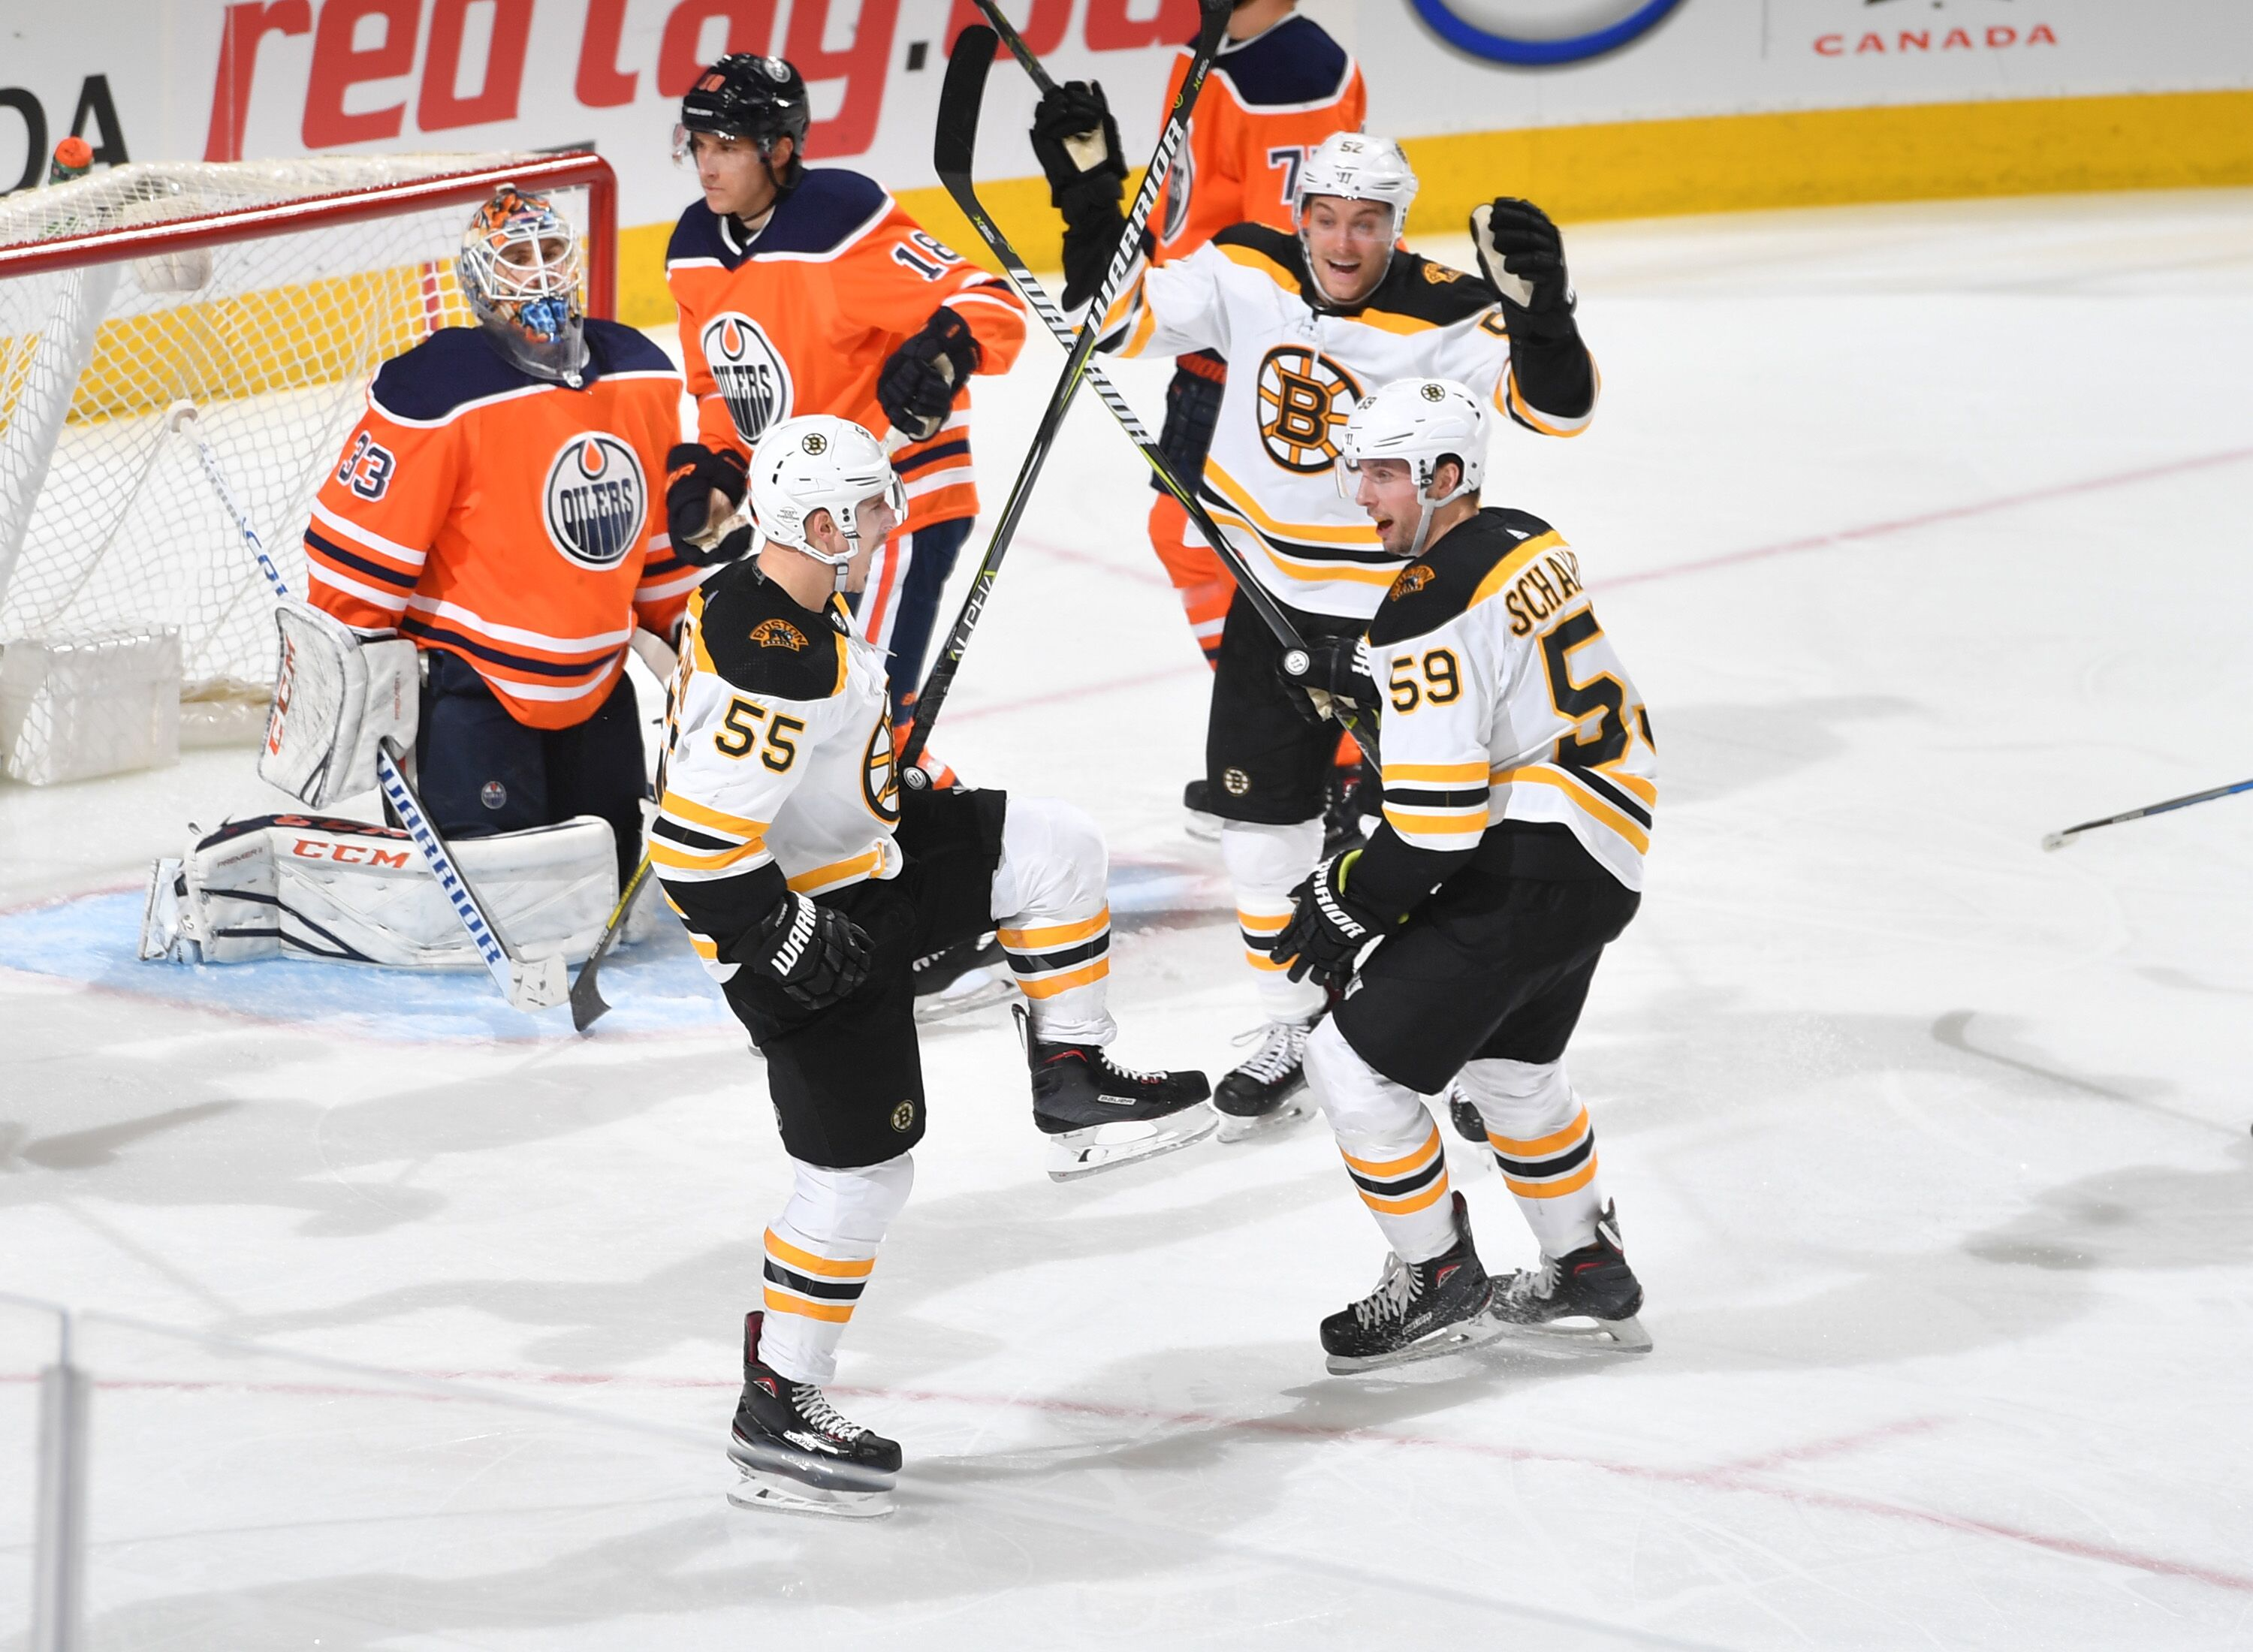 921841166-boston-bruins-v-edmonton-oilers.jpg